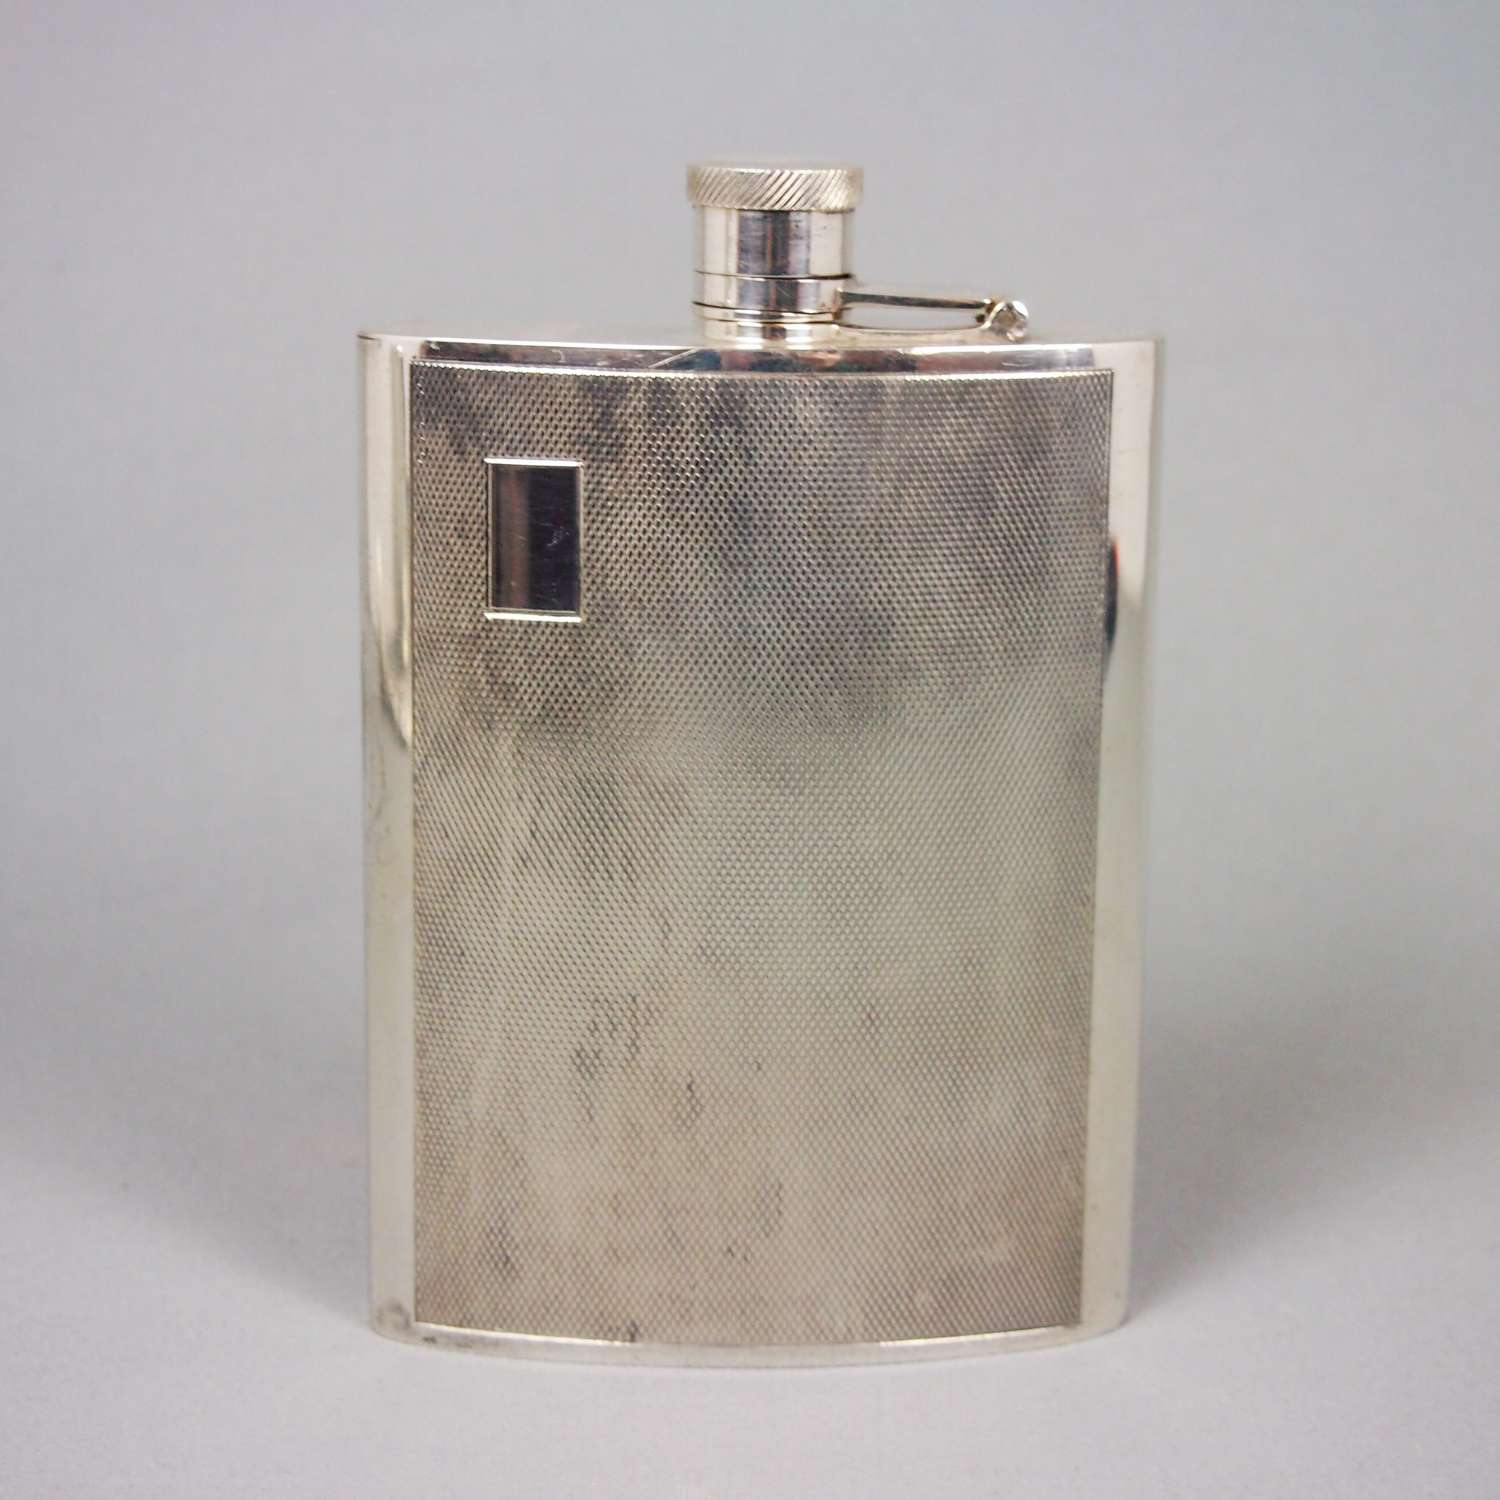 Vintage engine turned silver plated whisky flask. W8503